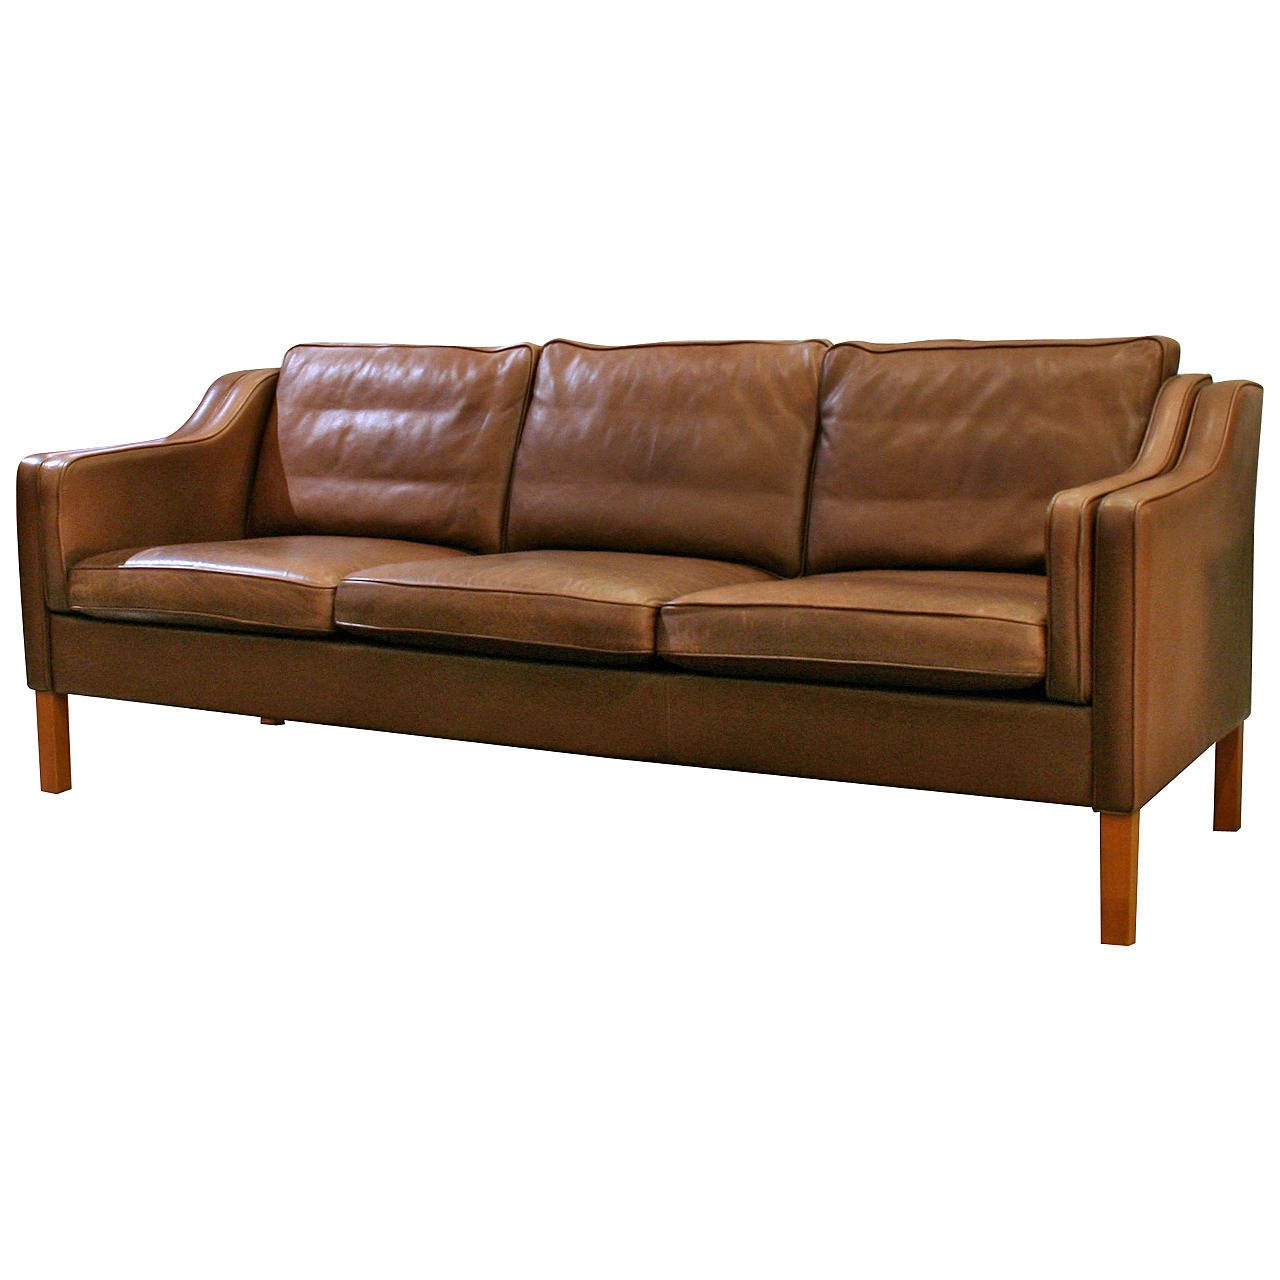 mogensen sofa 2209 soho large clic clac bed red vintage danish leather at 1stdibs